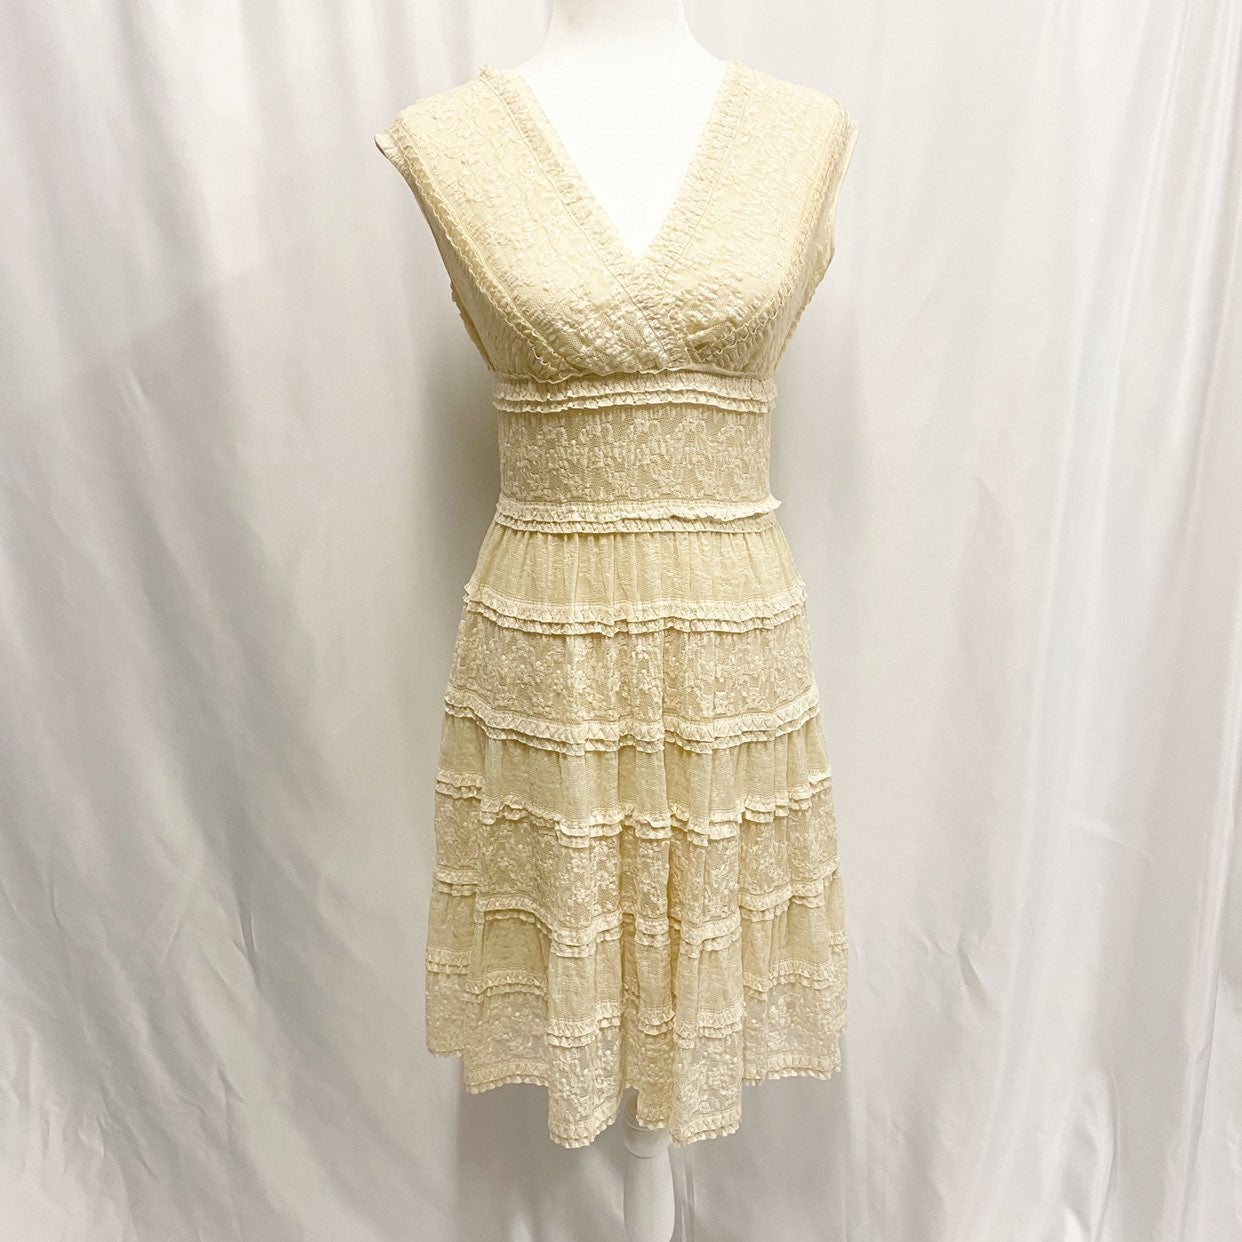 Studio M Tiered Lace Antique White Dress